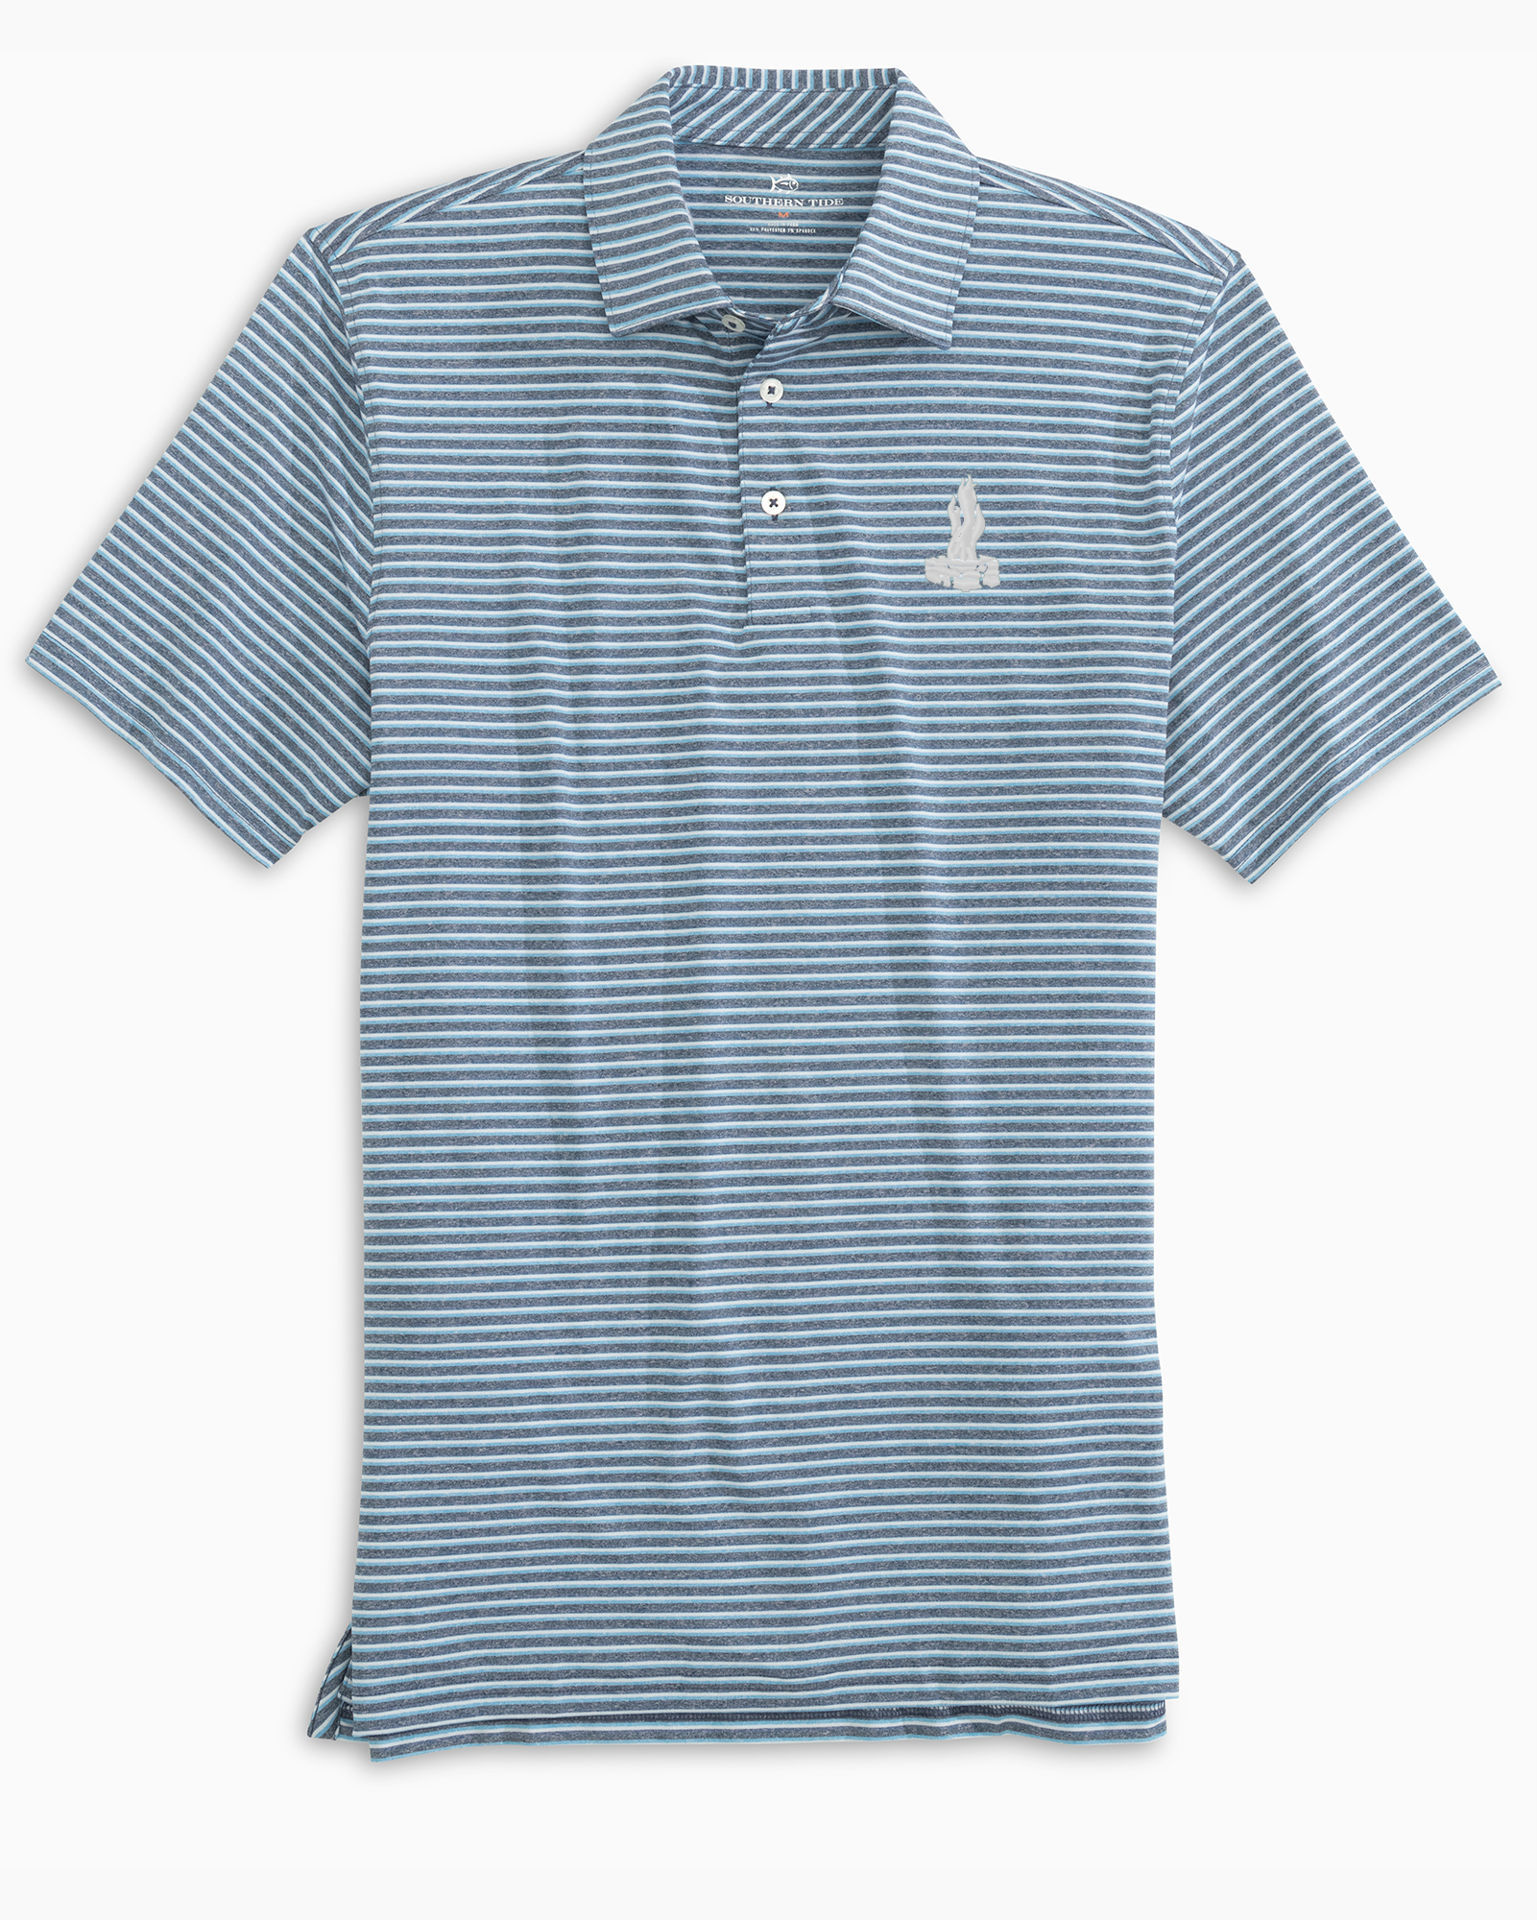 Picture of Men's Heather Micro Striped Performance Polo - 2 Colors